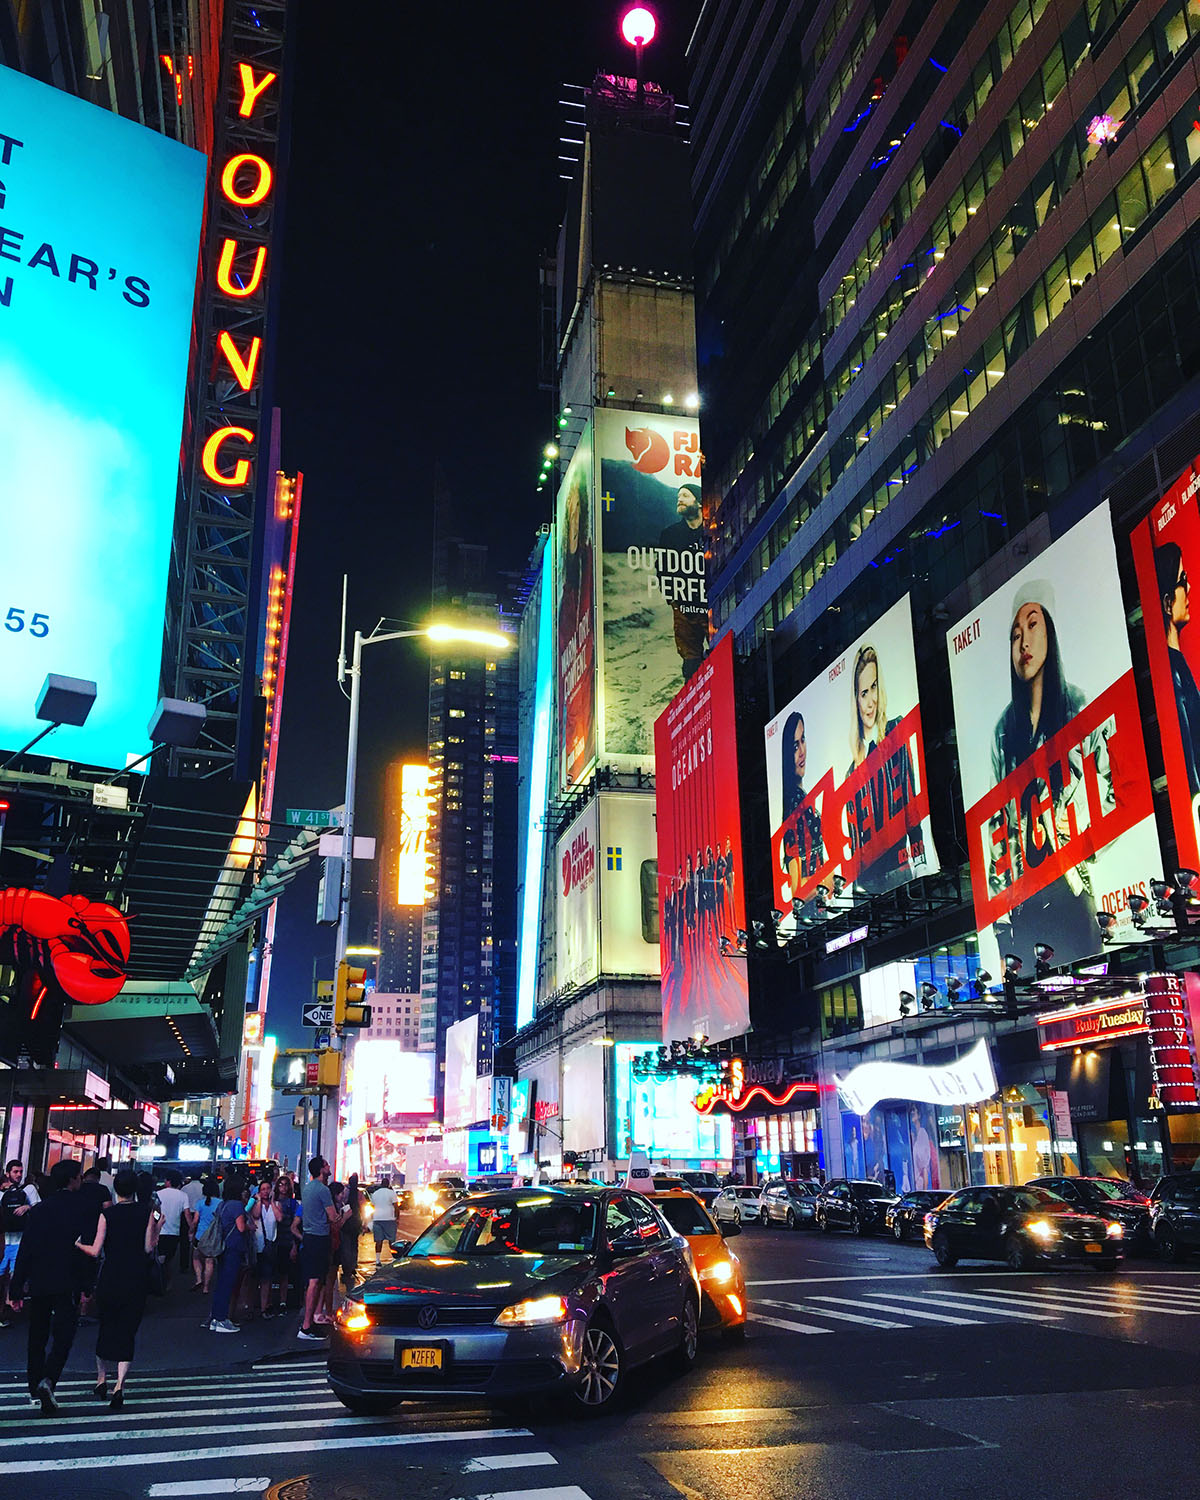 NYC Time Square Nighttime